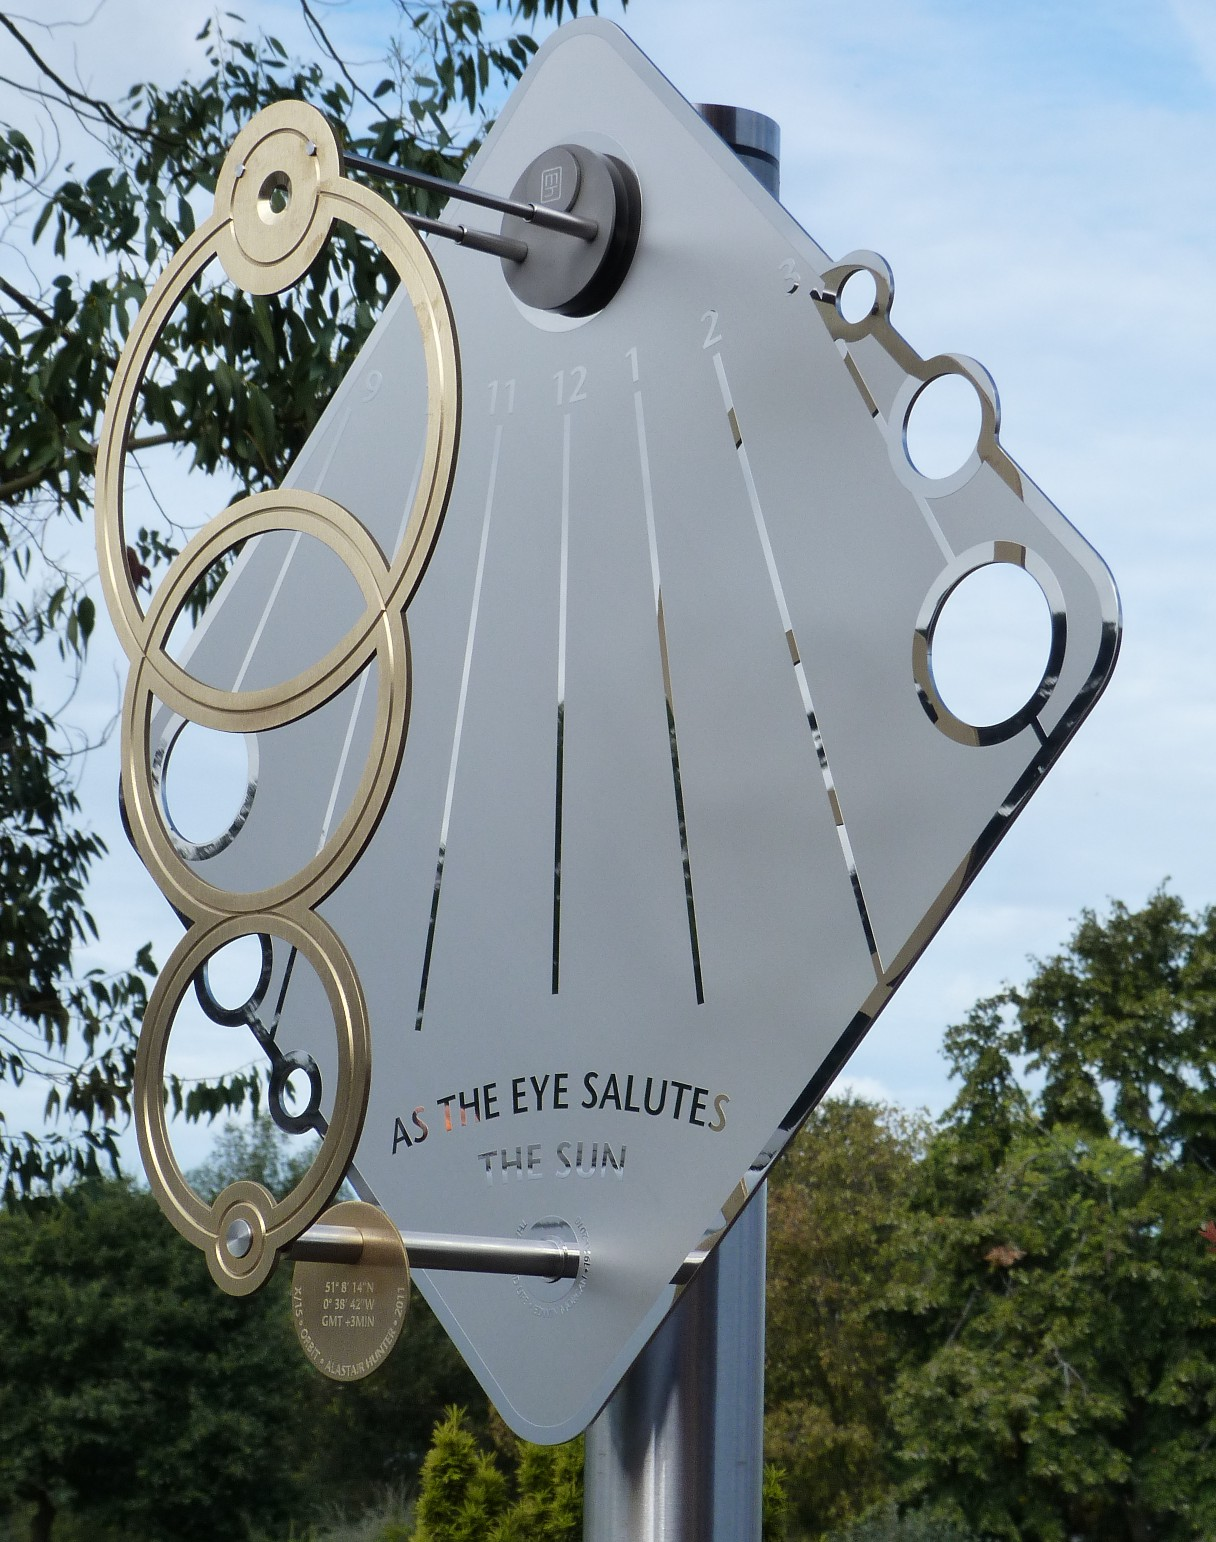 Sundial sculpture inspired by orbit of earth around the sun